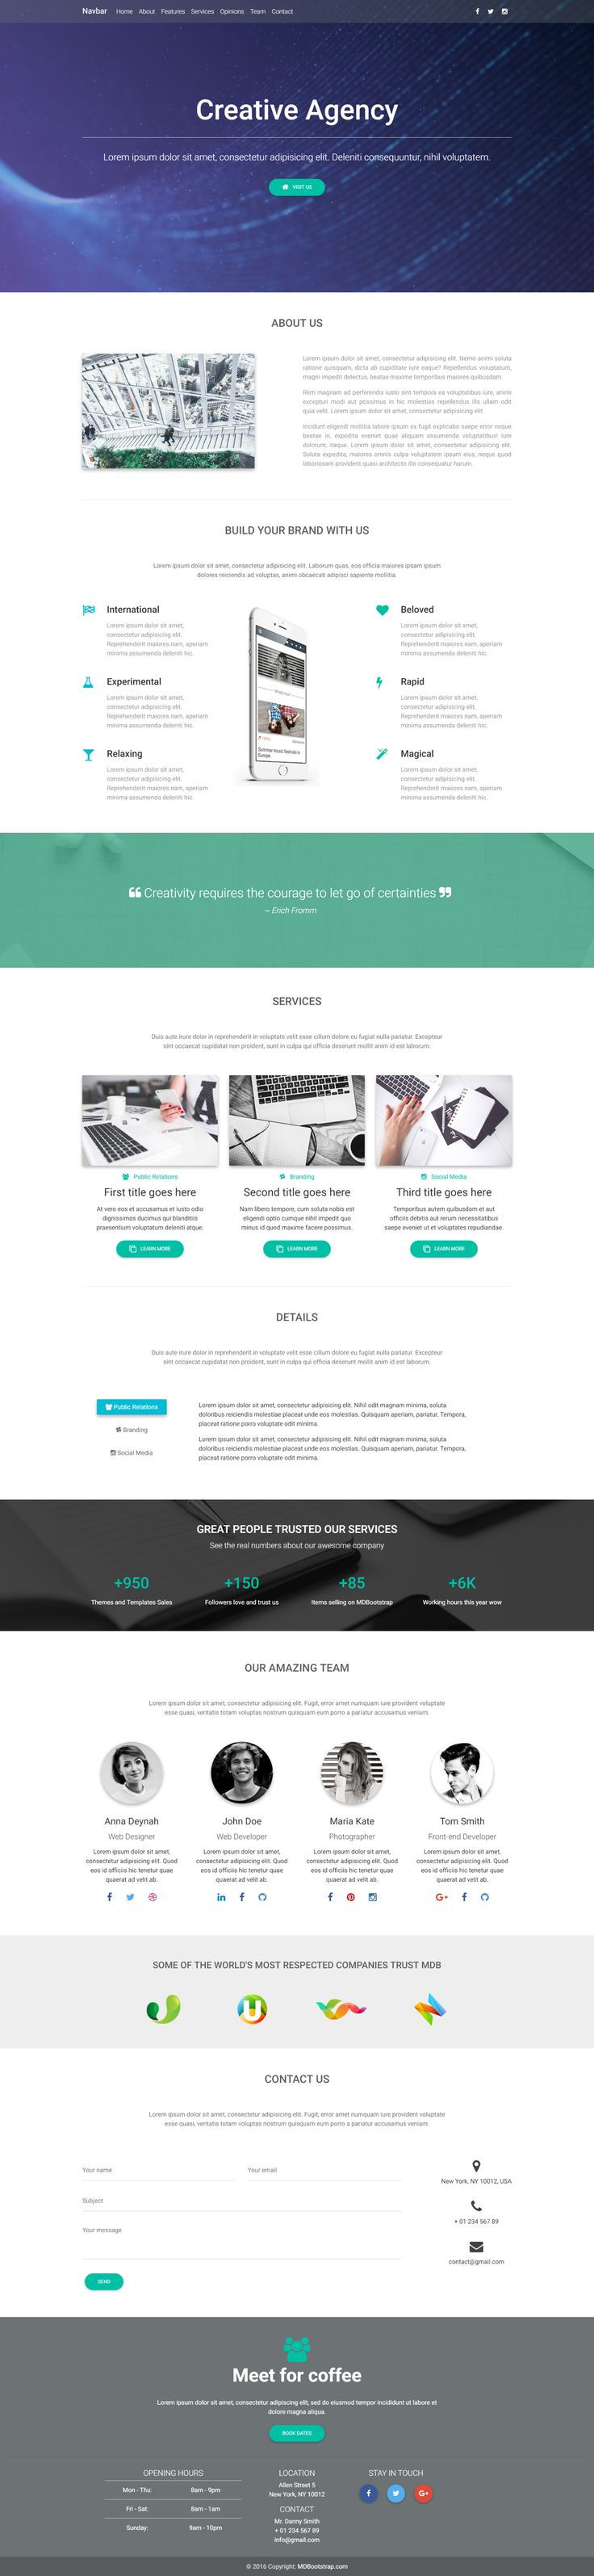 Creative Agency Landing Page